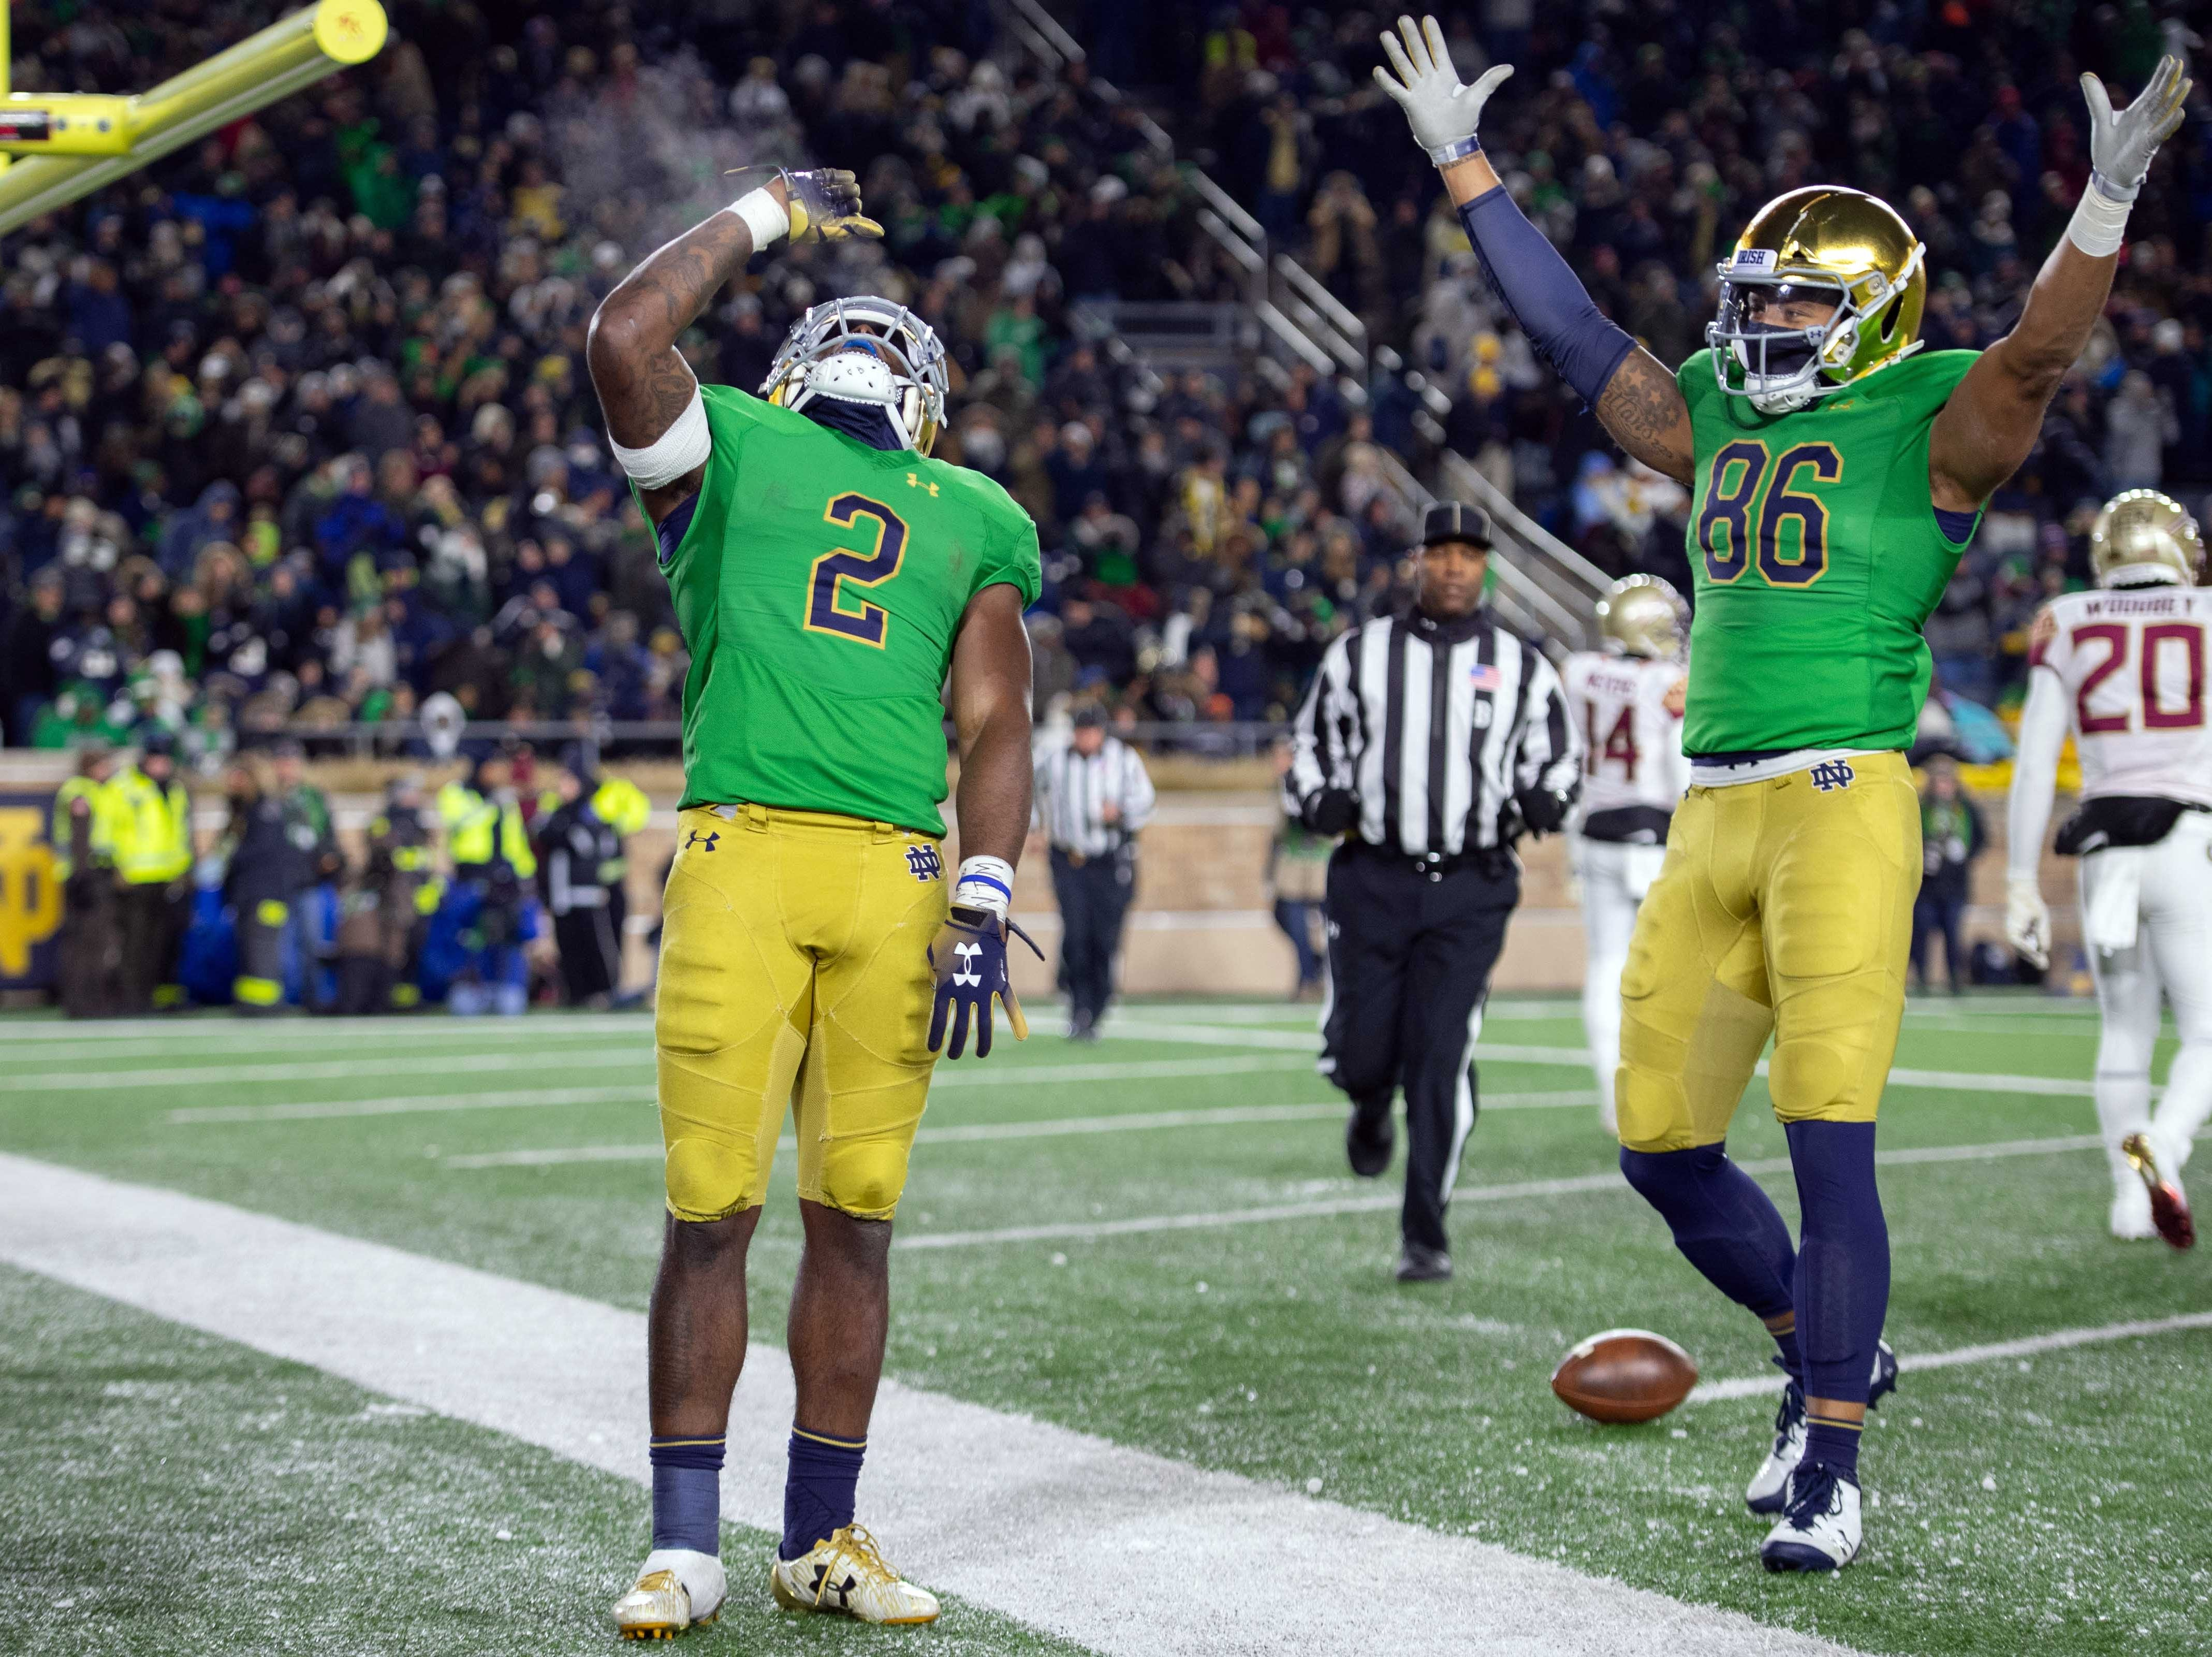 Notre Dame Fighting Irish running back Dexter Williams (2) and tight end Alize Mack (86) celebrate after Williams scored a touchdown in the fourth quarter against the Florida State Seminoles at Notre Dame Stadium.